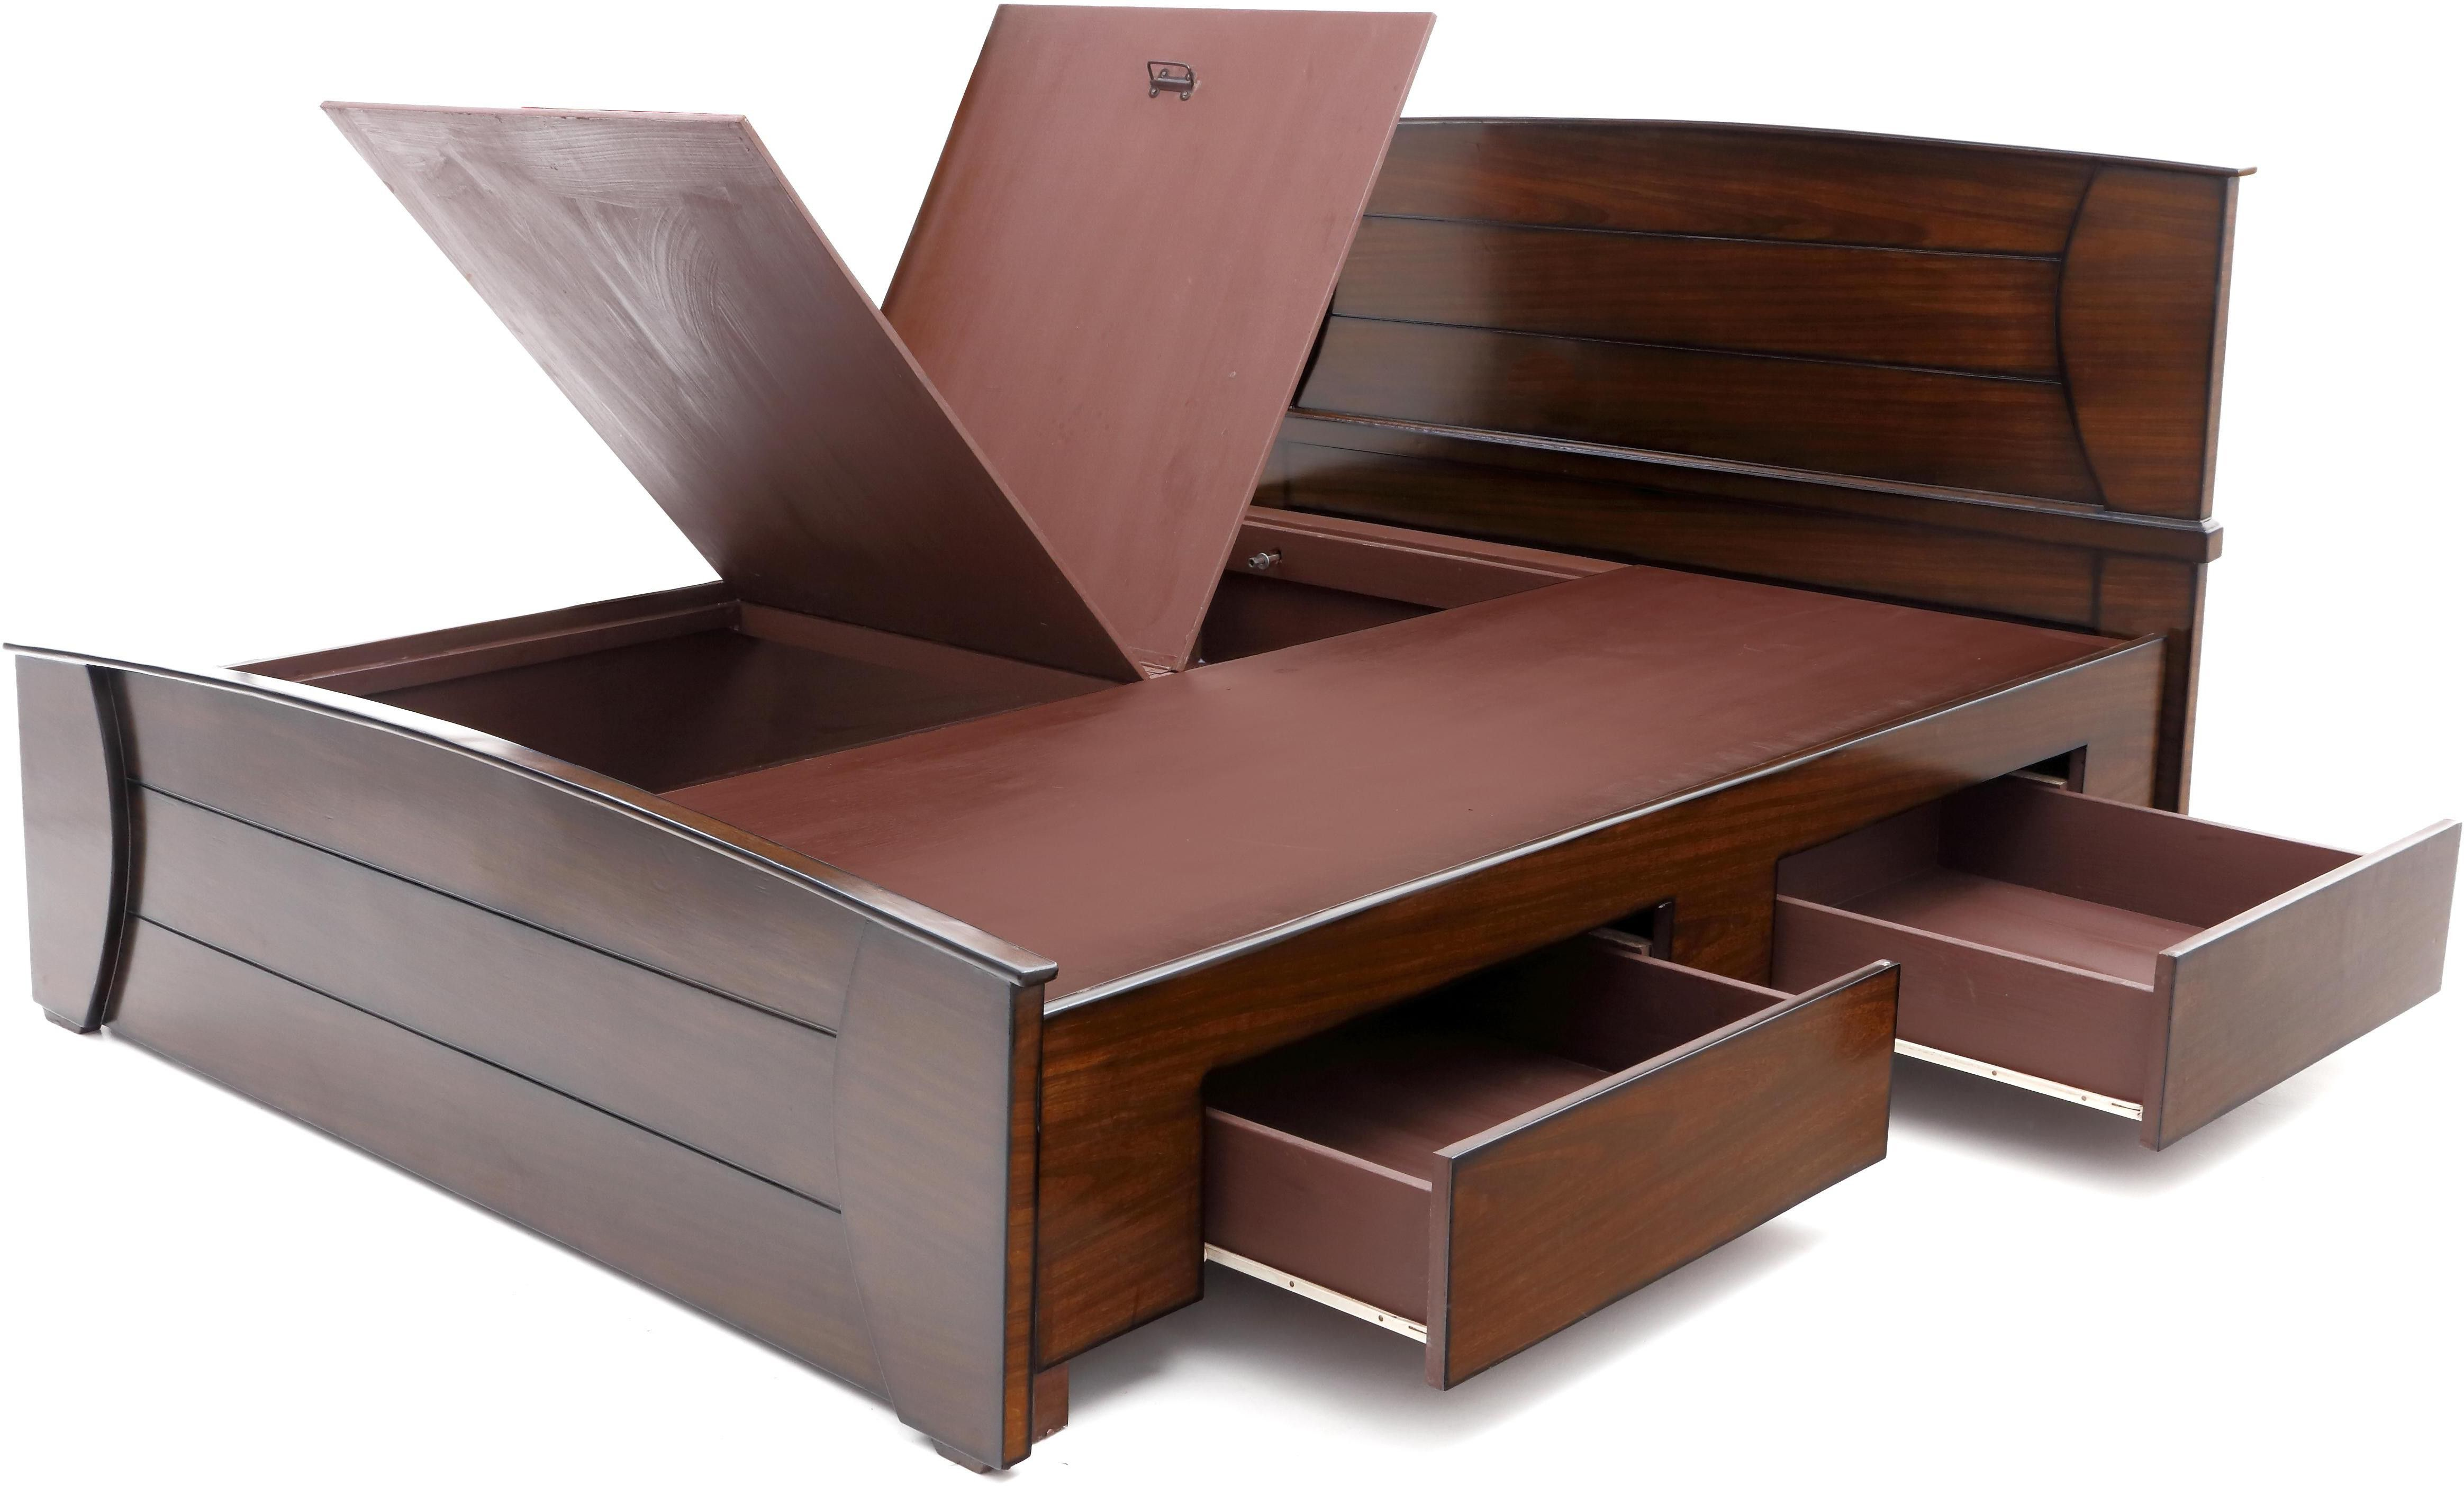 Furnicity Engineered Wood King Bed With Storage Price In India Buy Furnicity Engineered Wood Kin Wooden Bed With Storage Wooden Bed Design Bedroom Bed Design